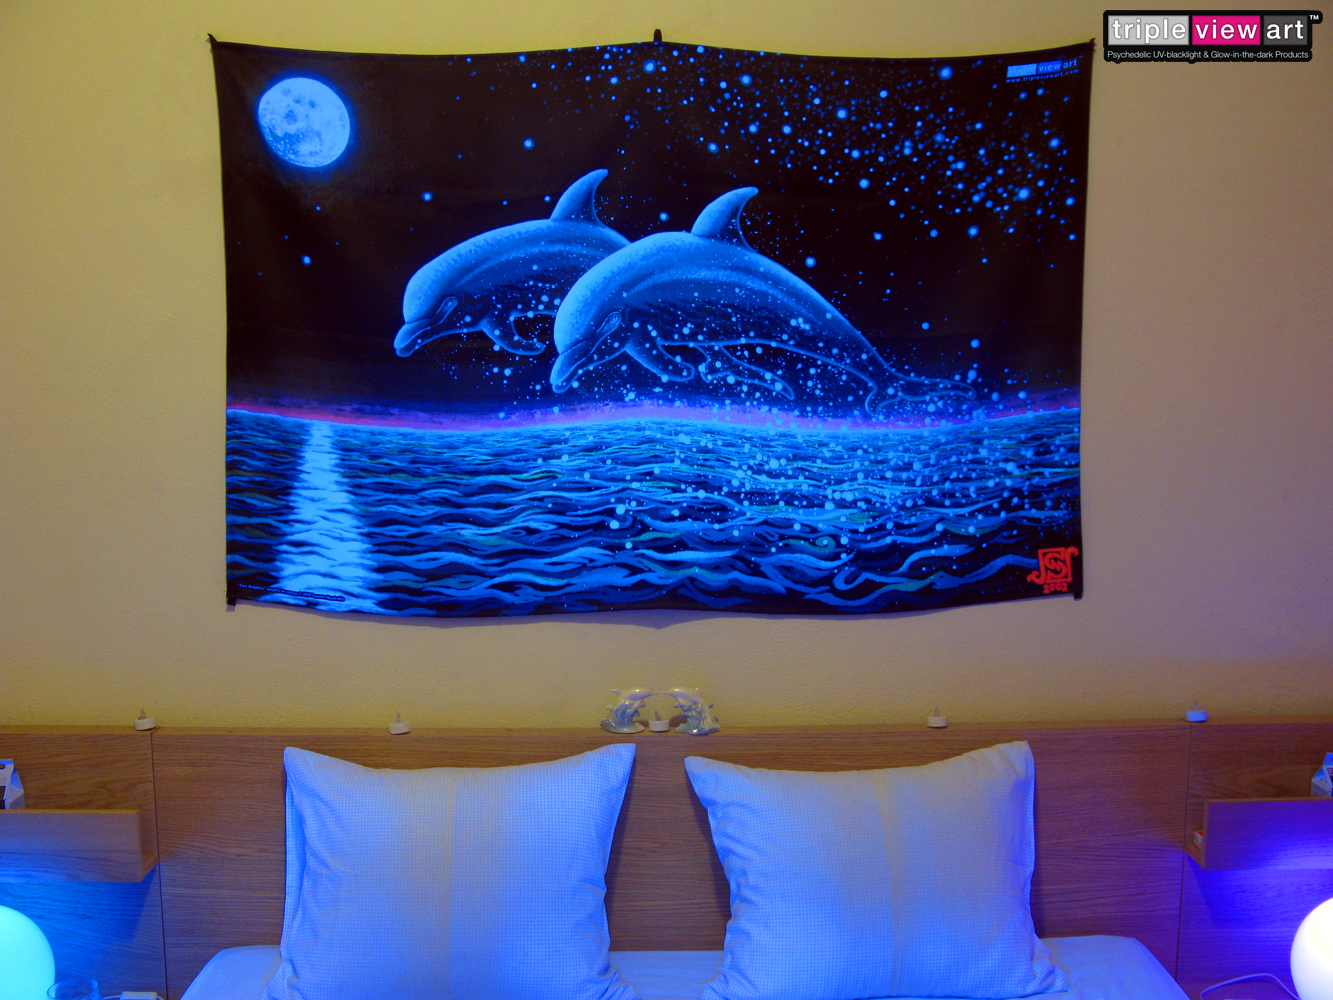 Two Dolphins UV Blacklight Fluorescent Glow Backdrop Banner Wall Hanging Tapestry Deco Tripleview Art Shop